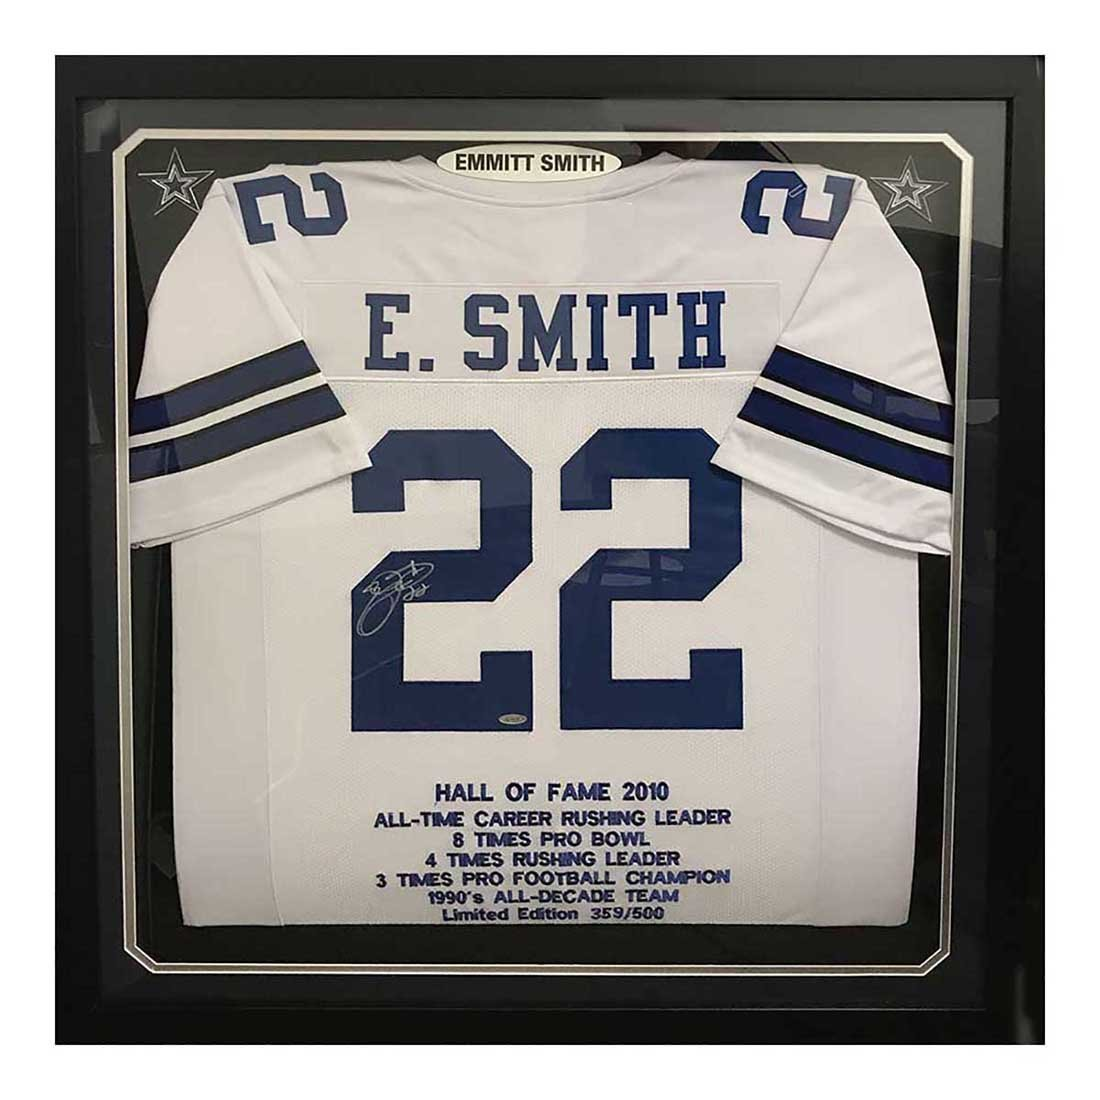 Emmitt Smith Autographed Jersey